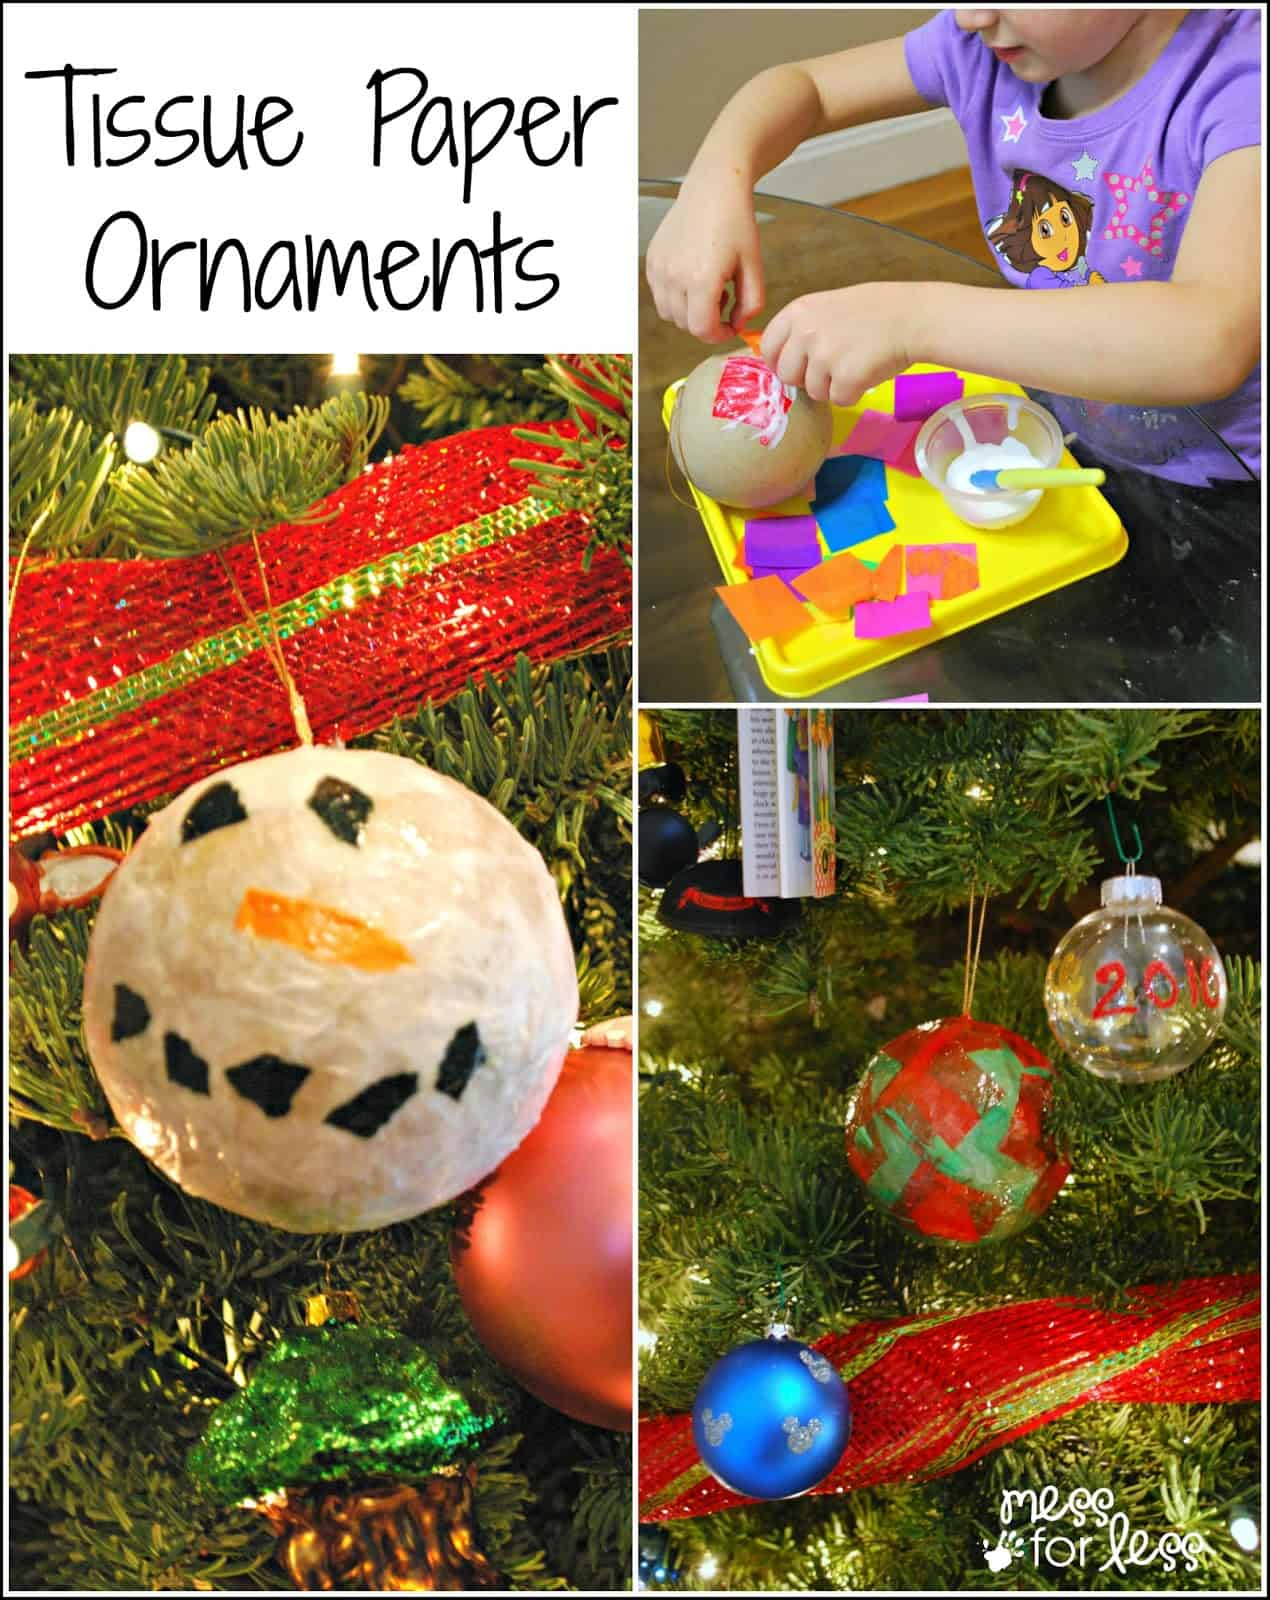 Homemade christmas ornaments with tissue paper mess for less homemade christmas ornaments with tissue paper jeuxipadfo Choice Image